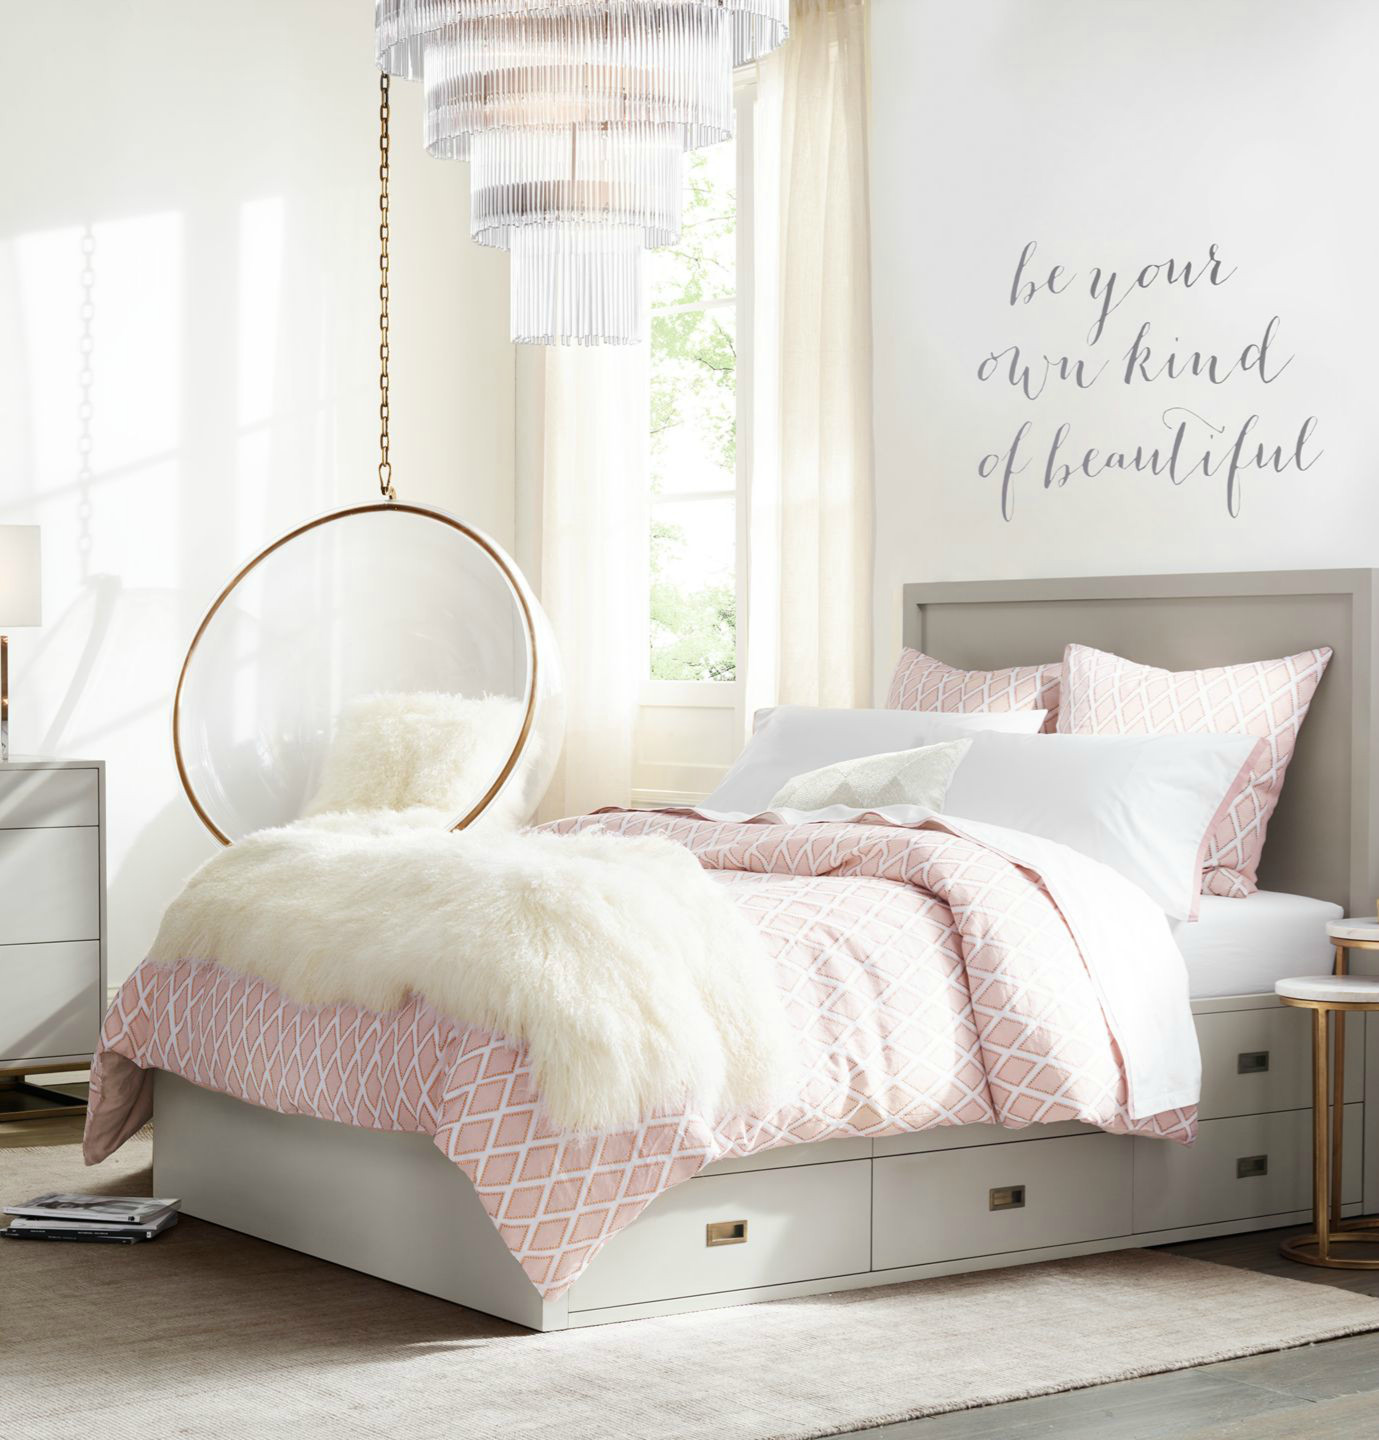 Excellent Bedrooms with Vintage touch Sleek Silhouettes Add A Contemporary touch to A Classic